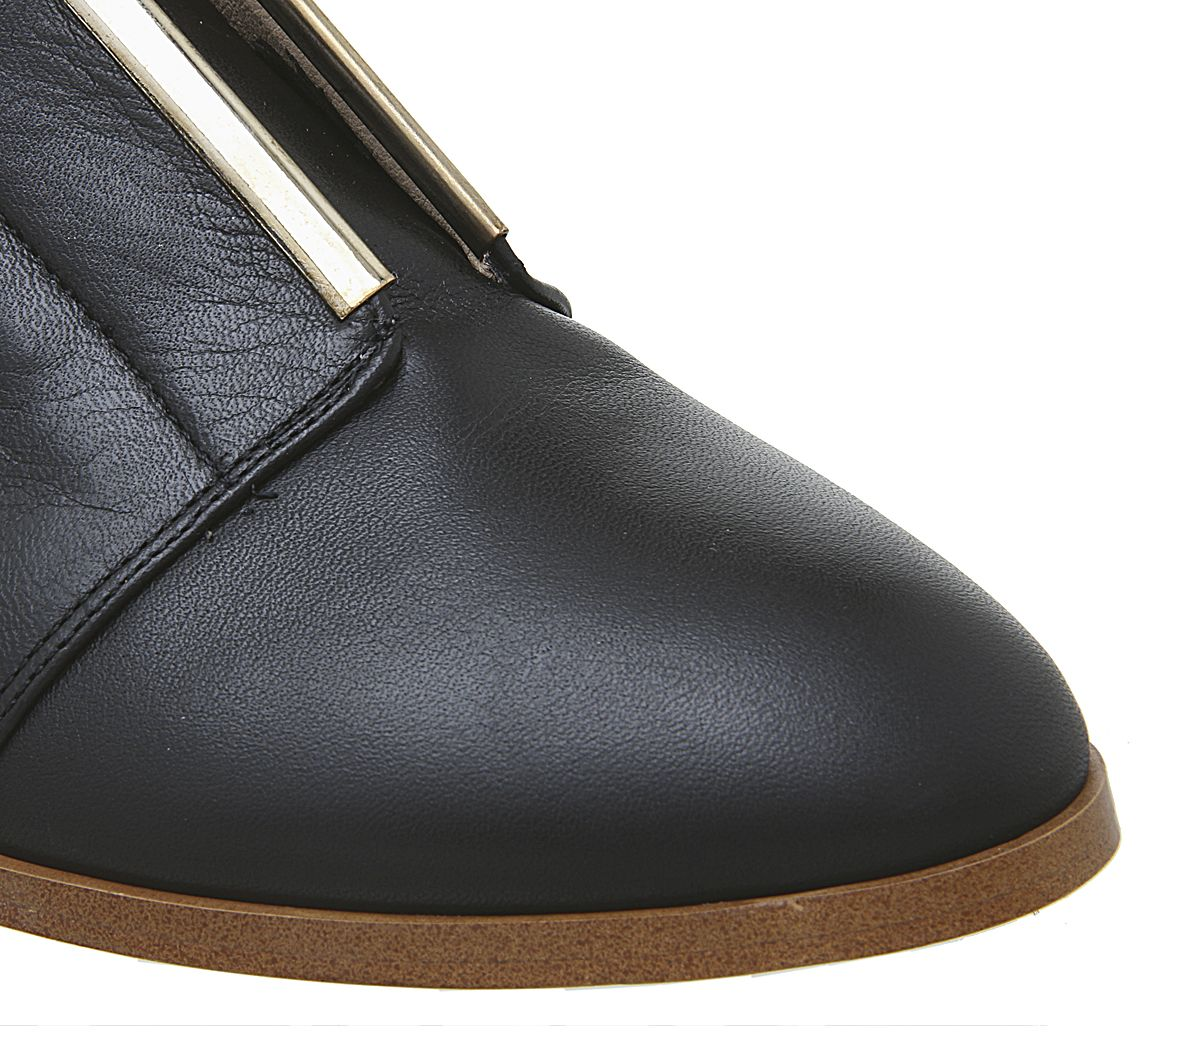 Womens Office Feather Slip On Flats Black Leather W Gold Trim Flats